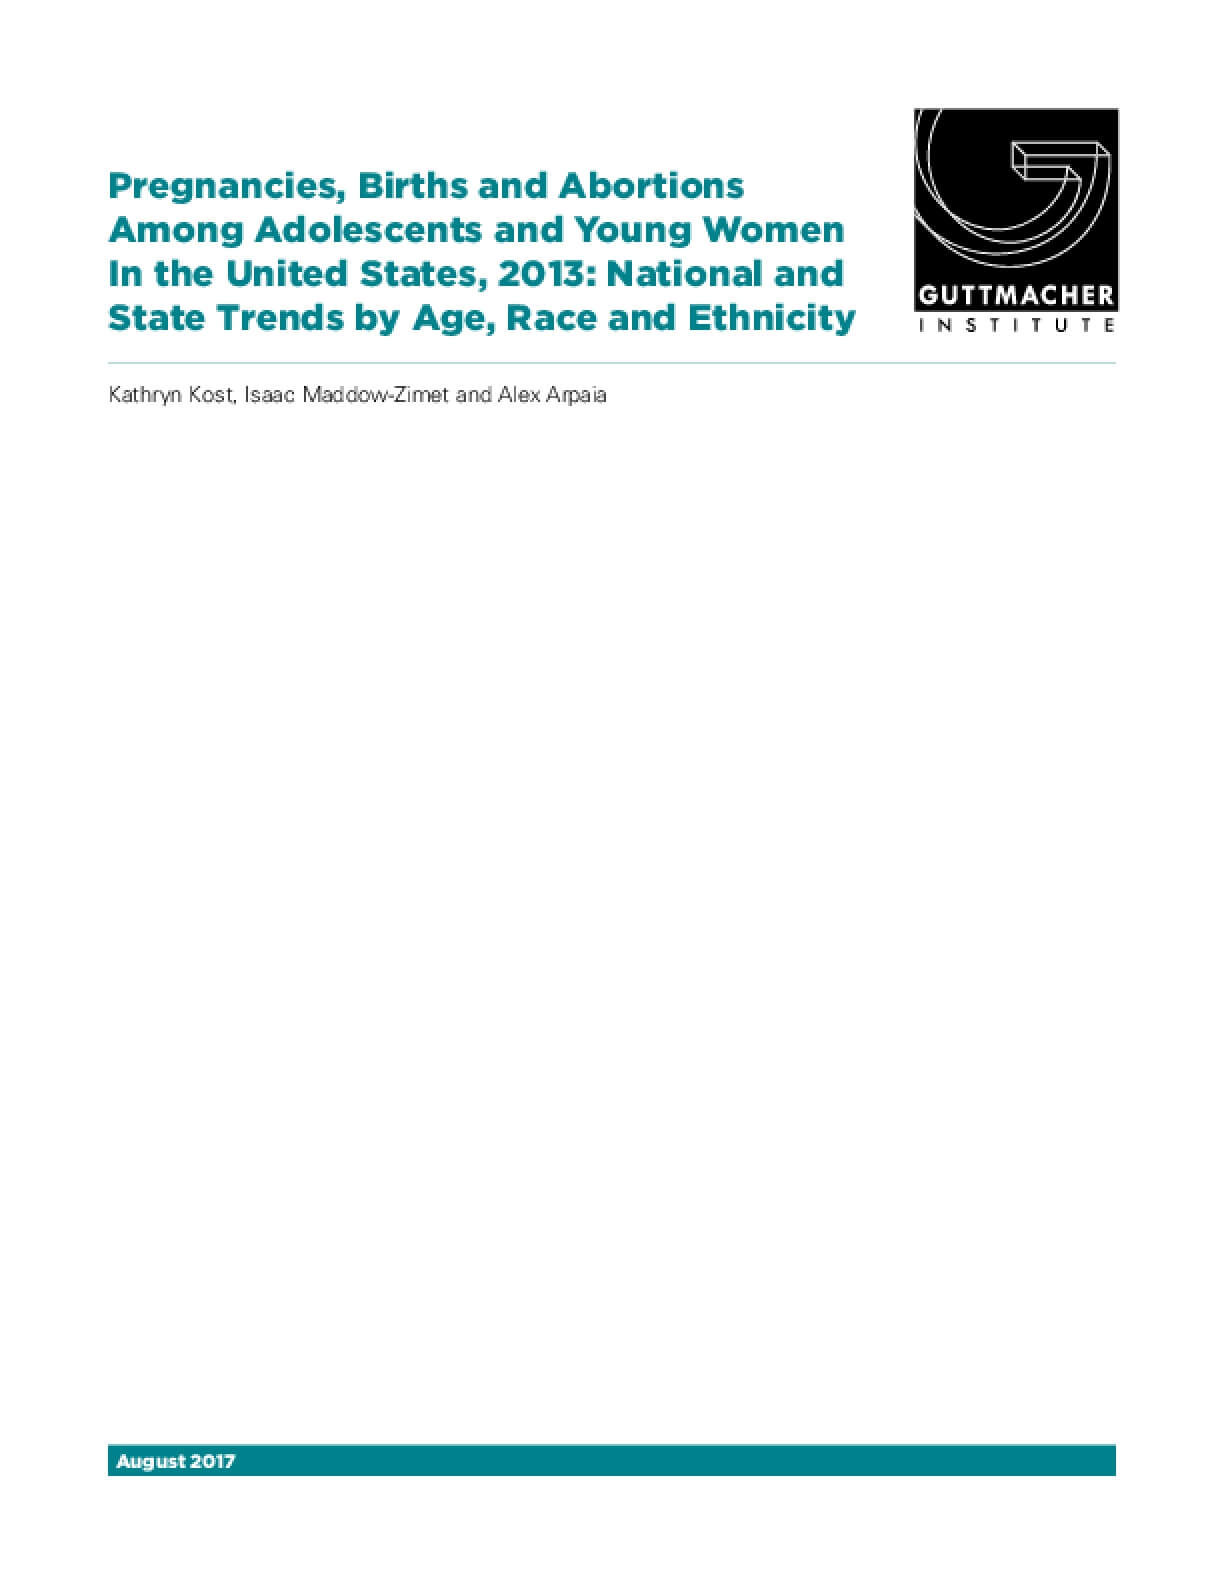 Pregnancies, Births and Abortions Among Adolescents and Young Women in the United States, 2013: National and State Trends by Age, Race and Ethnicity